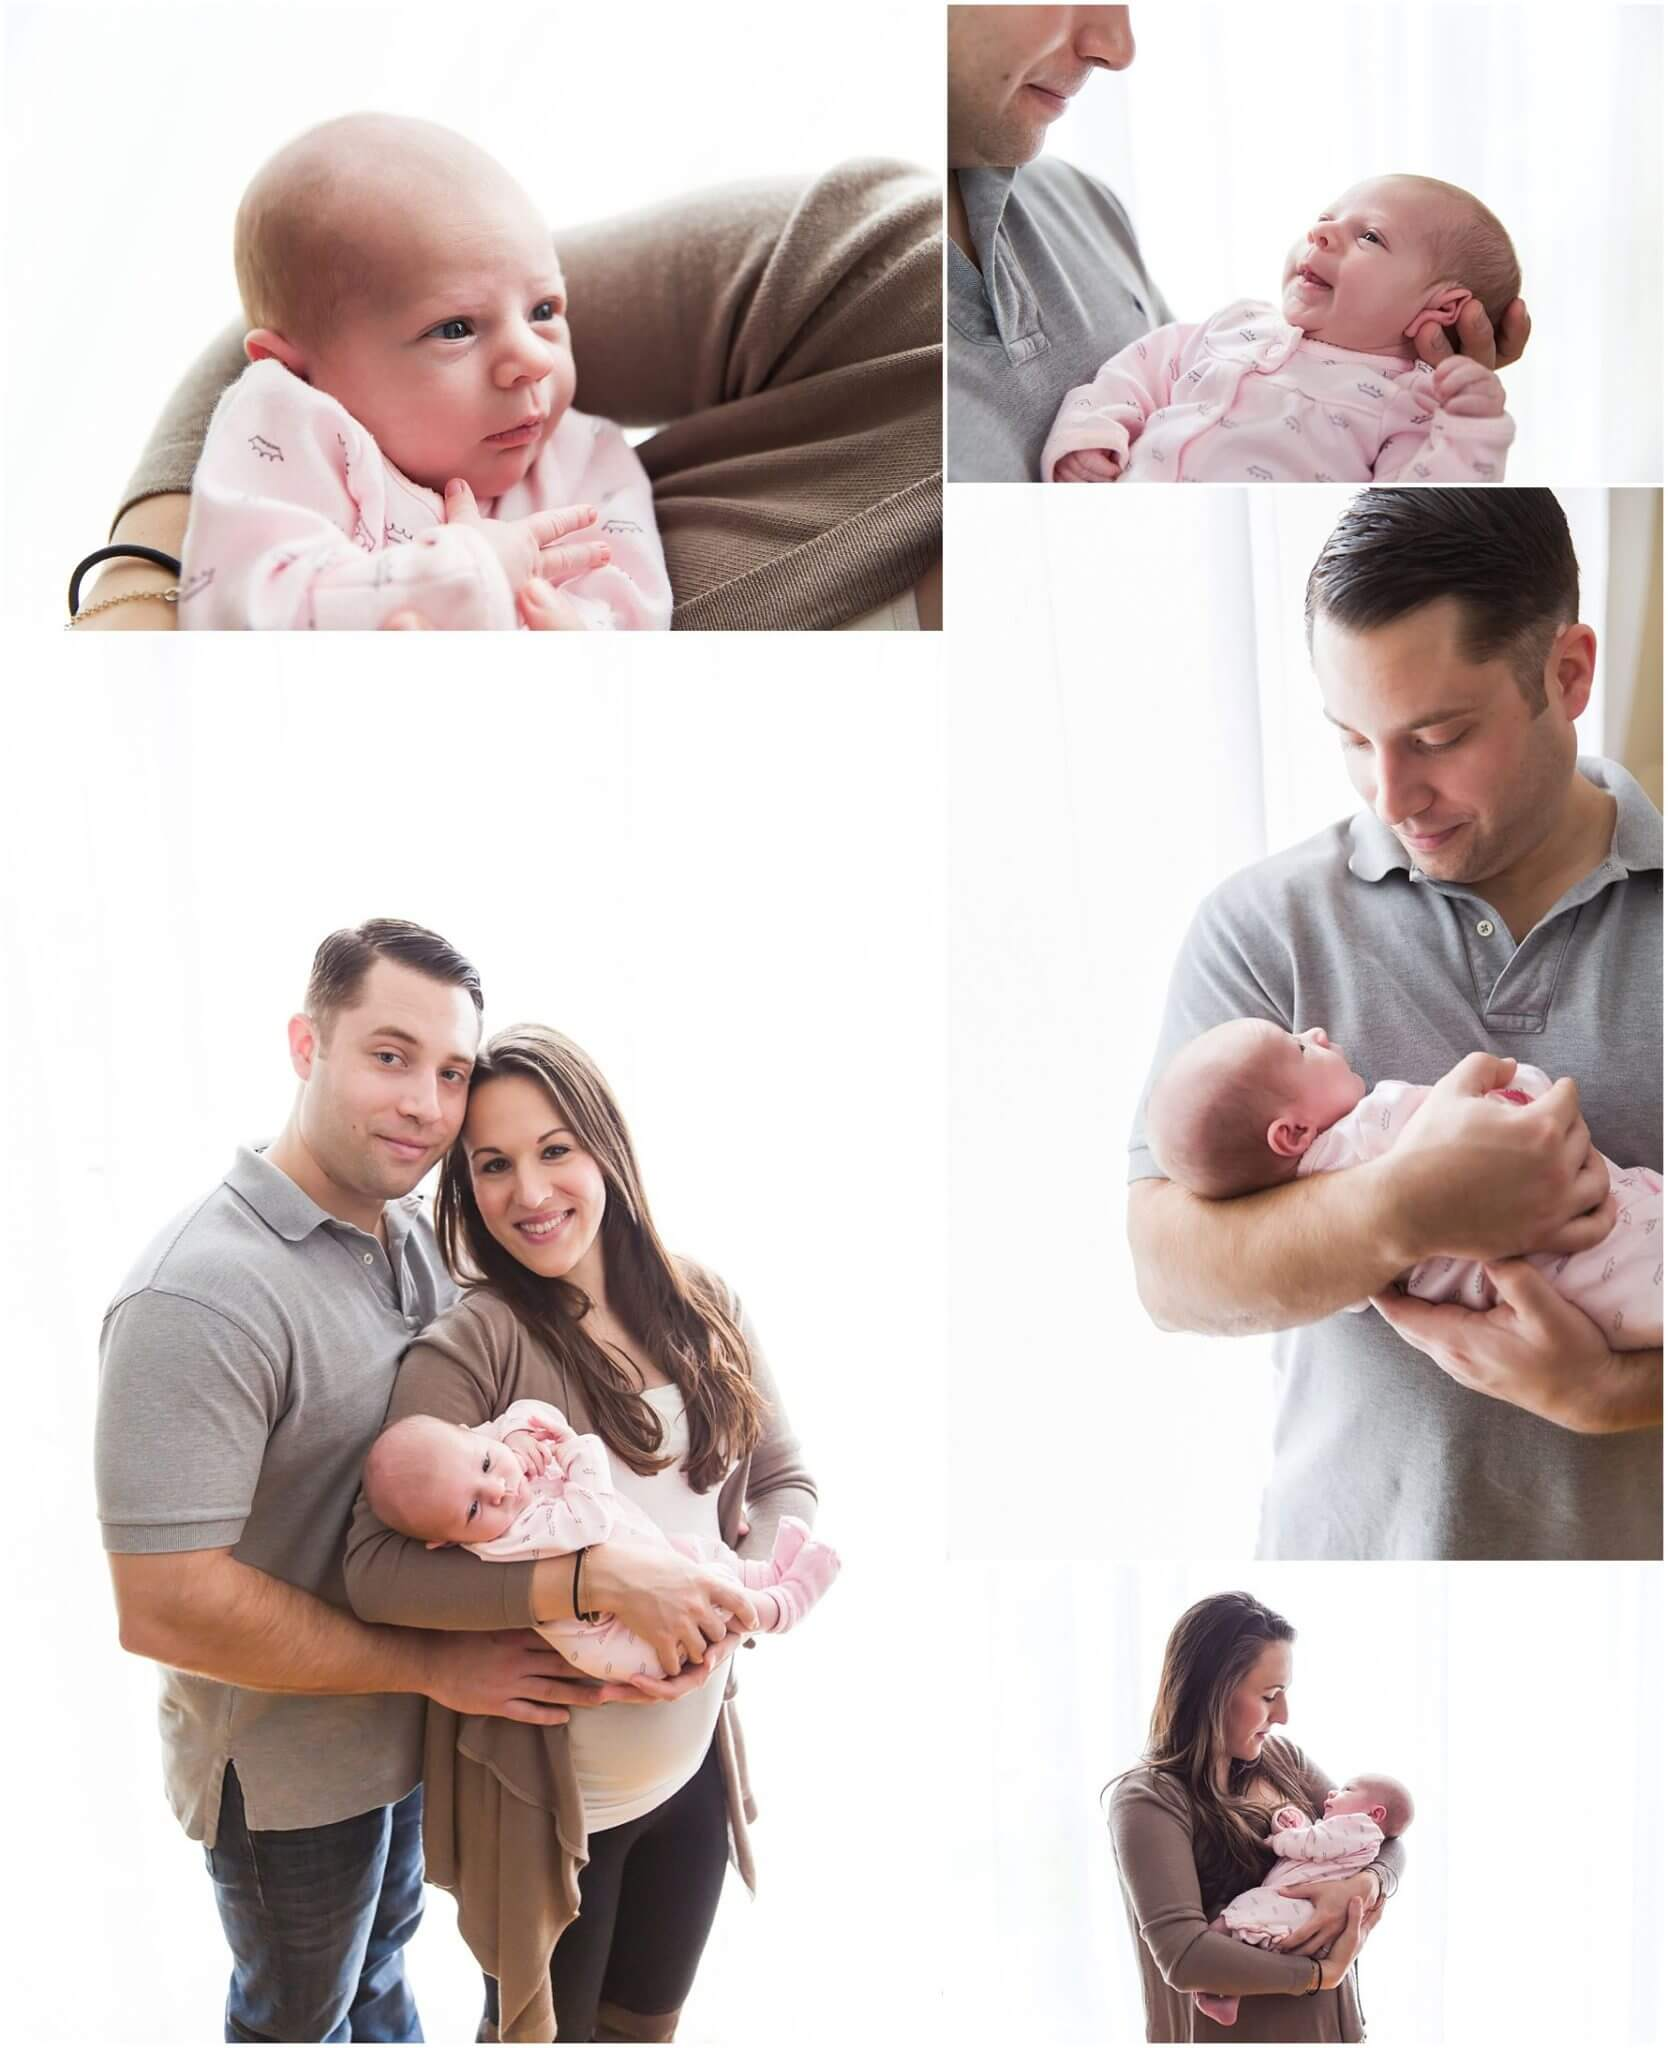 lifestyle newborn session. family holding newborn baby girl using large window as softbox backlighting them.